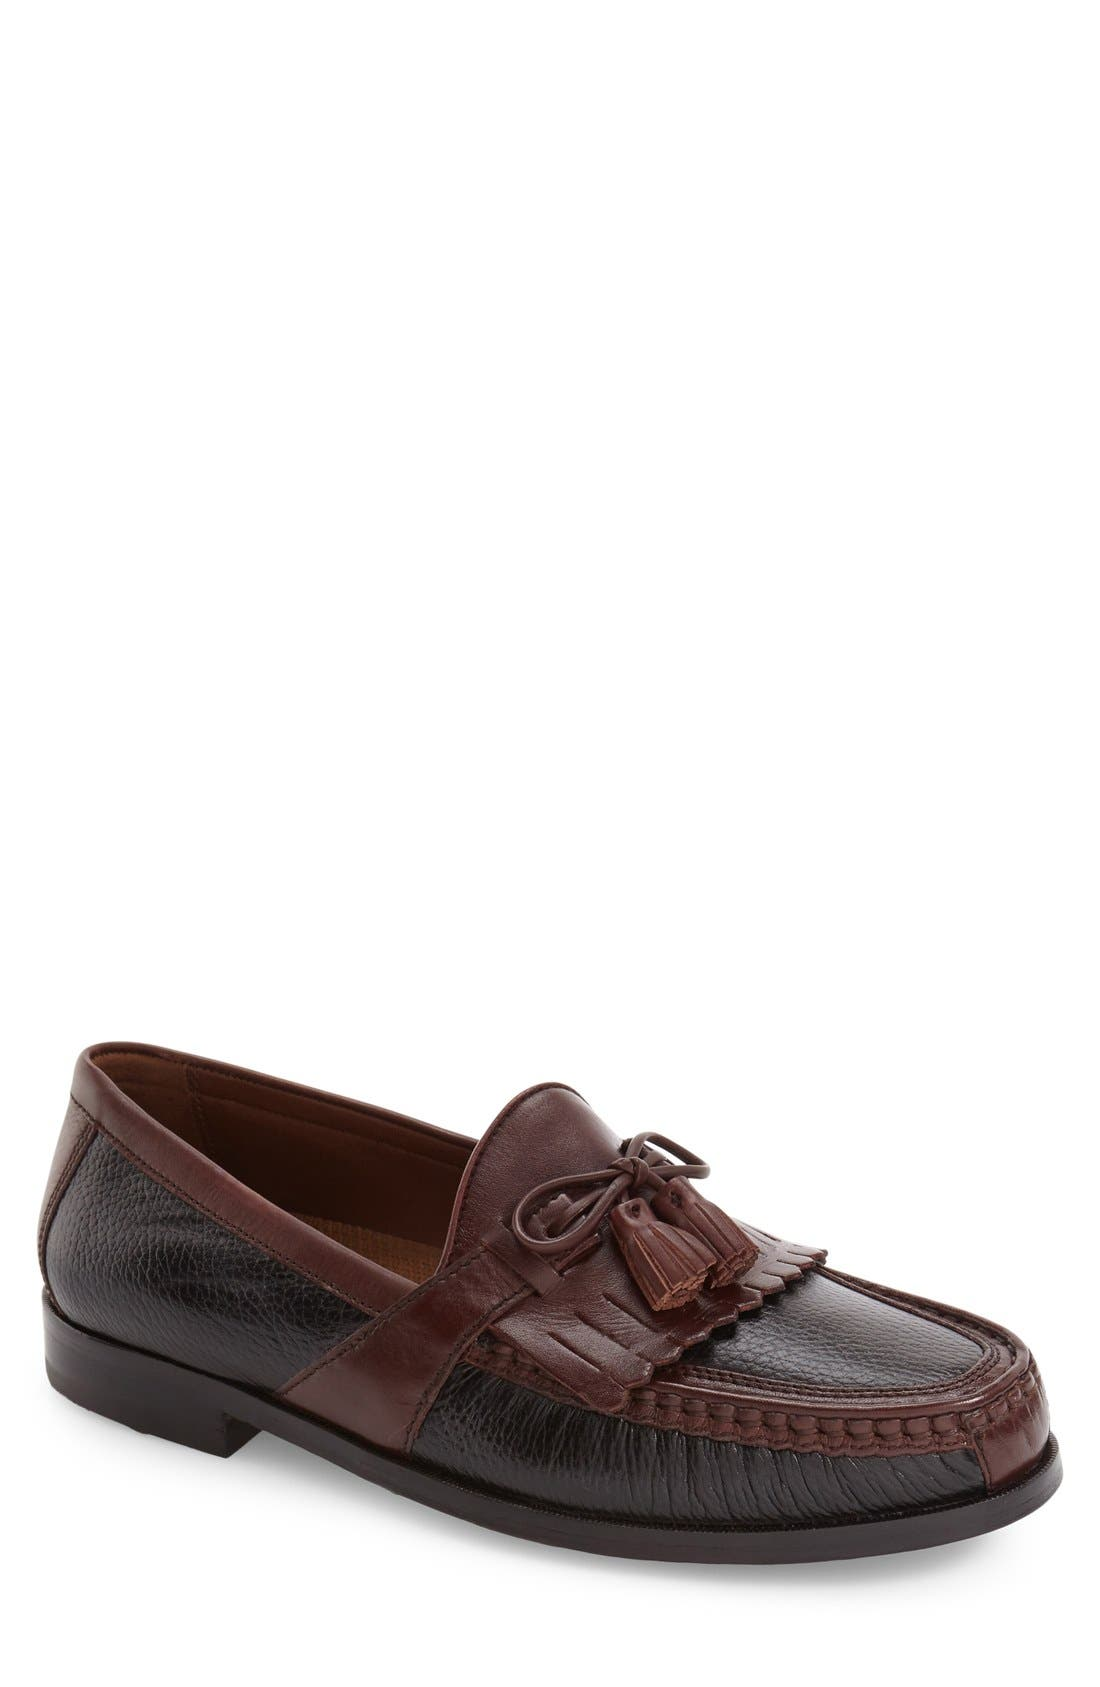 'Aragon II' Loafer,                             Main thumbnail 1, color,                             BLACK/ BROWN LEATHER